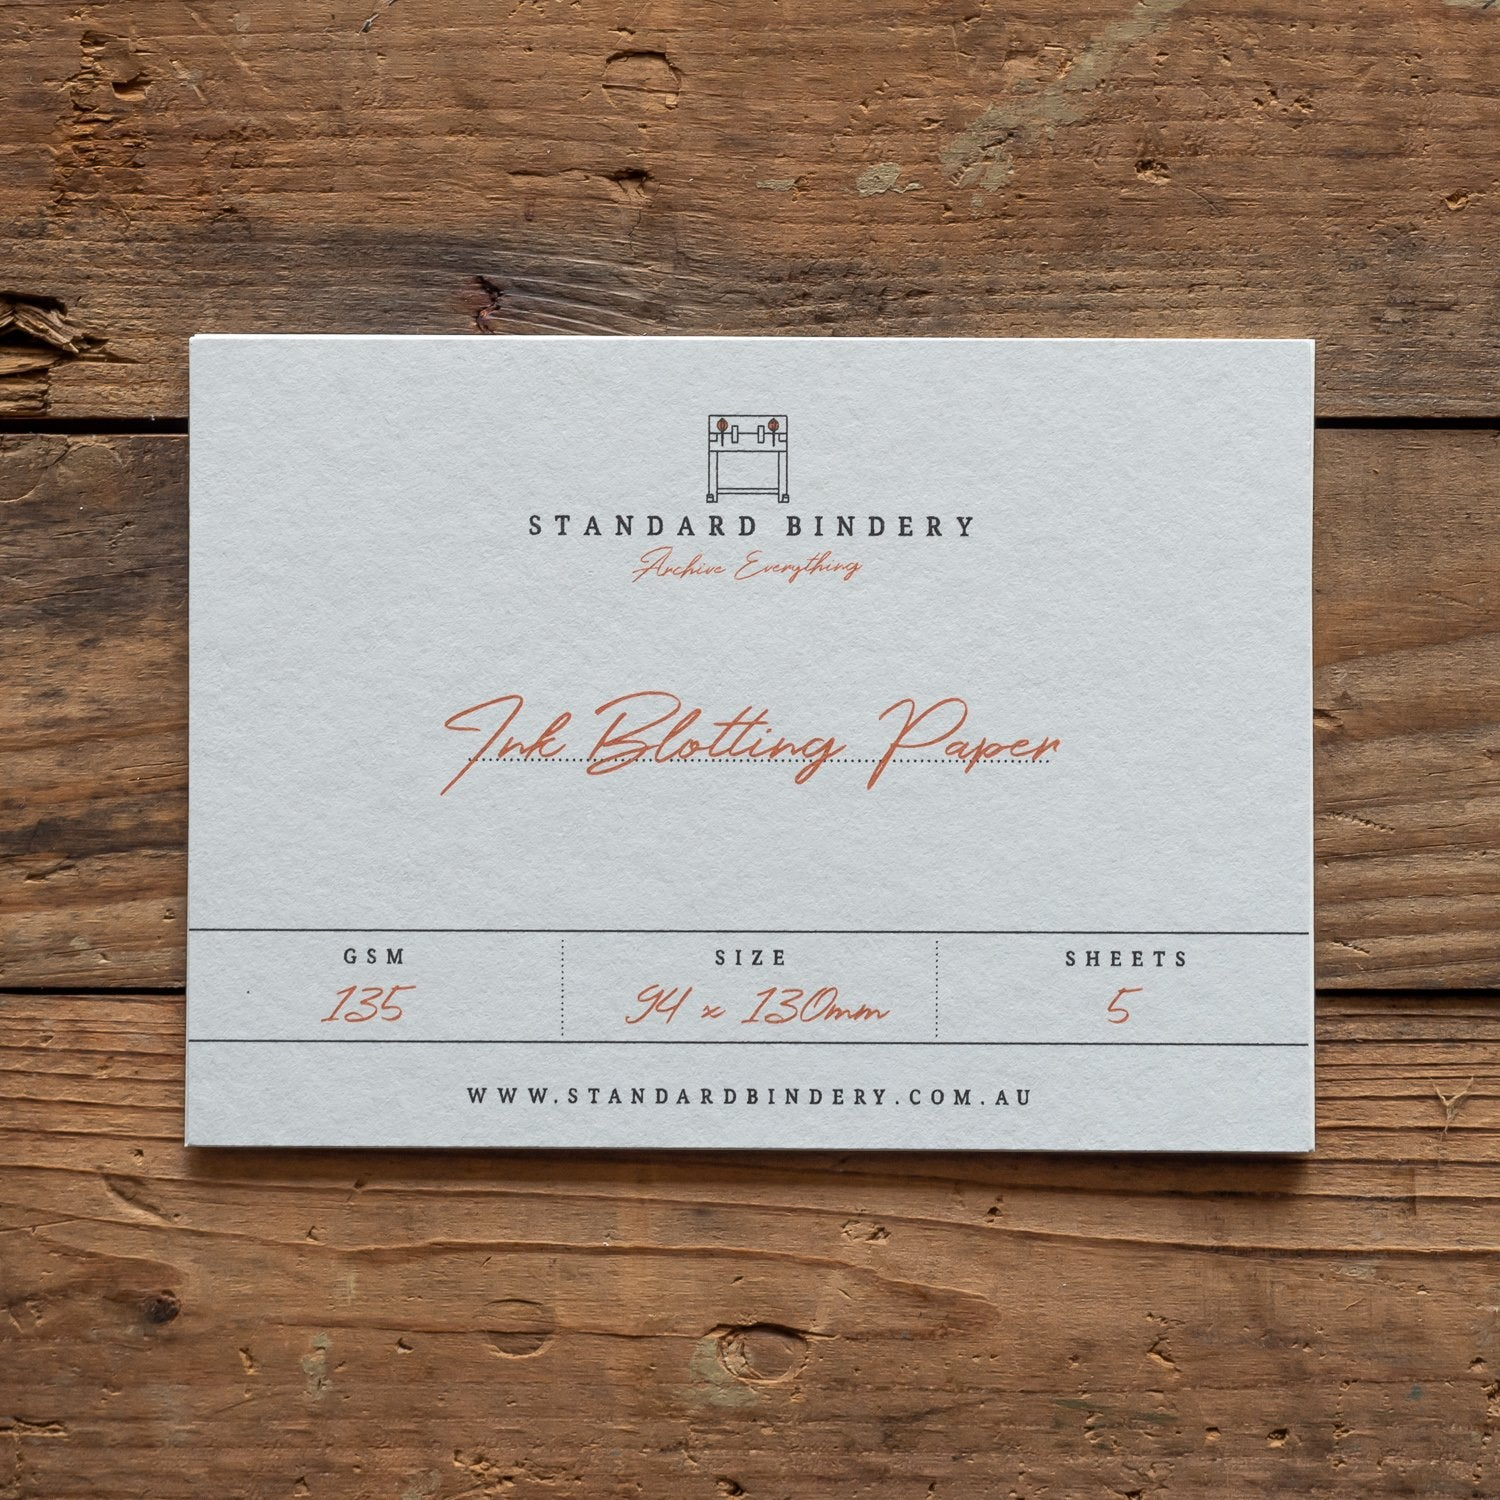 Blotting Paper - 5 Sheets